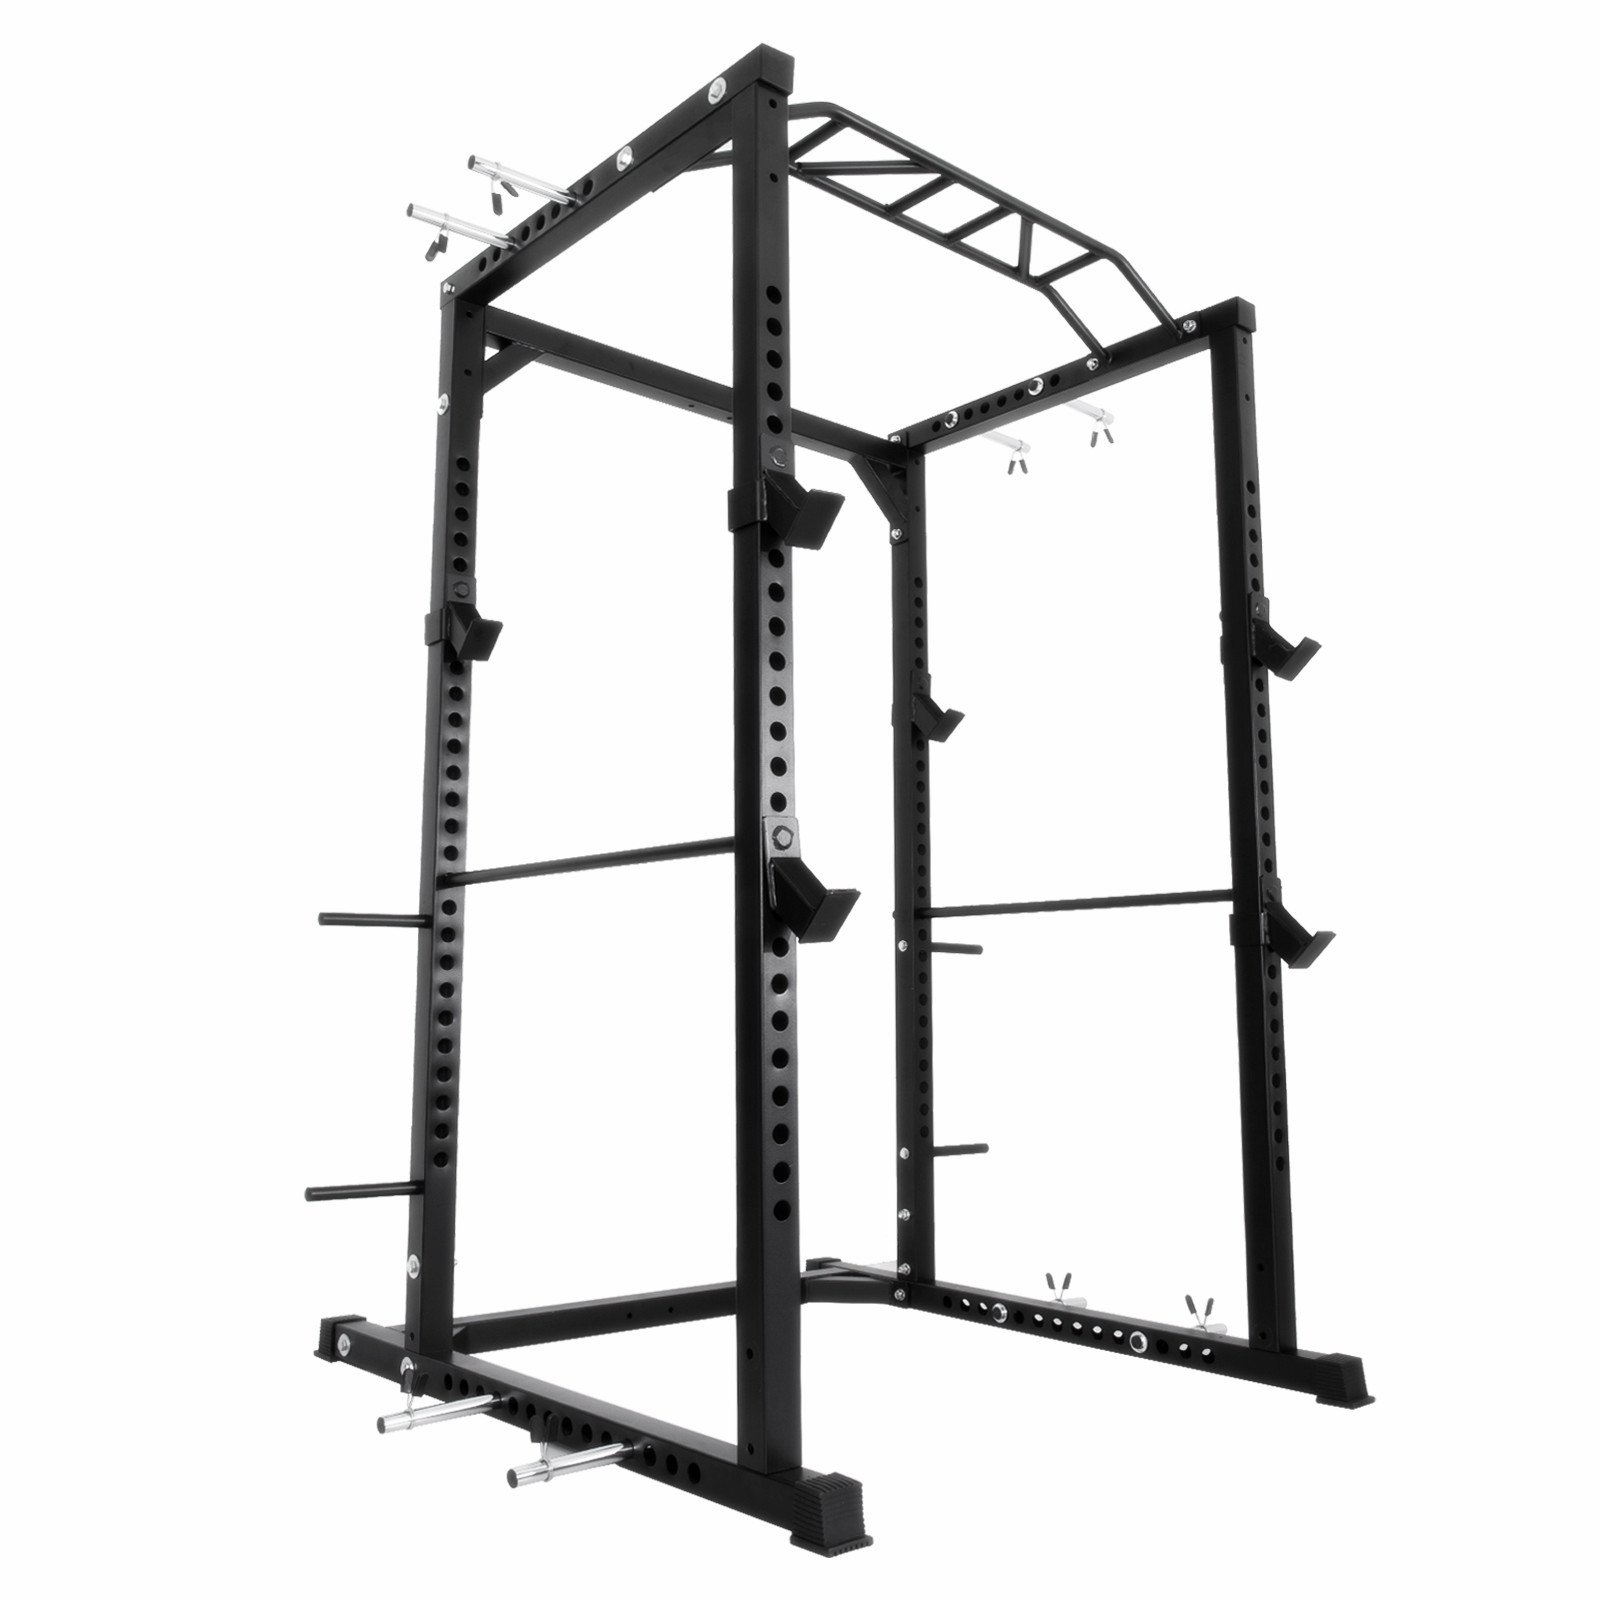 Popsport Deep Squat Rack Series Power Rack Squat Barbell Cage Bench Stand Heavy Duty Multi-Grip Chin-Up Fitness Power Rock with LAT Pull Attachment for Home Gym (BD-41) by Popsport